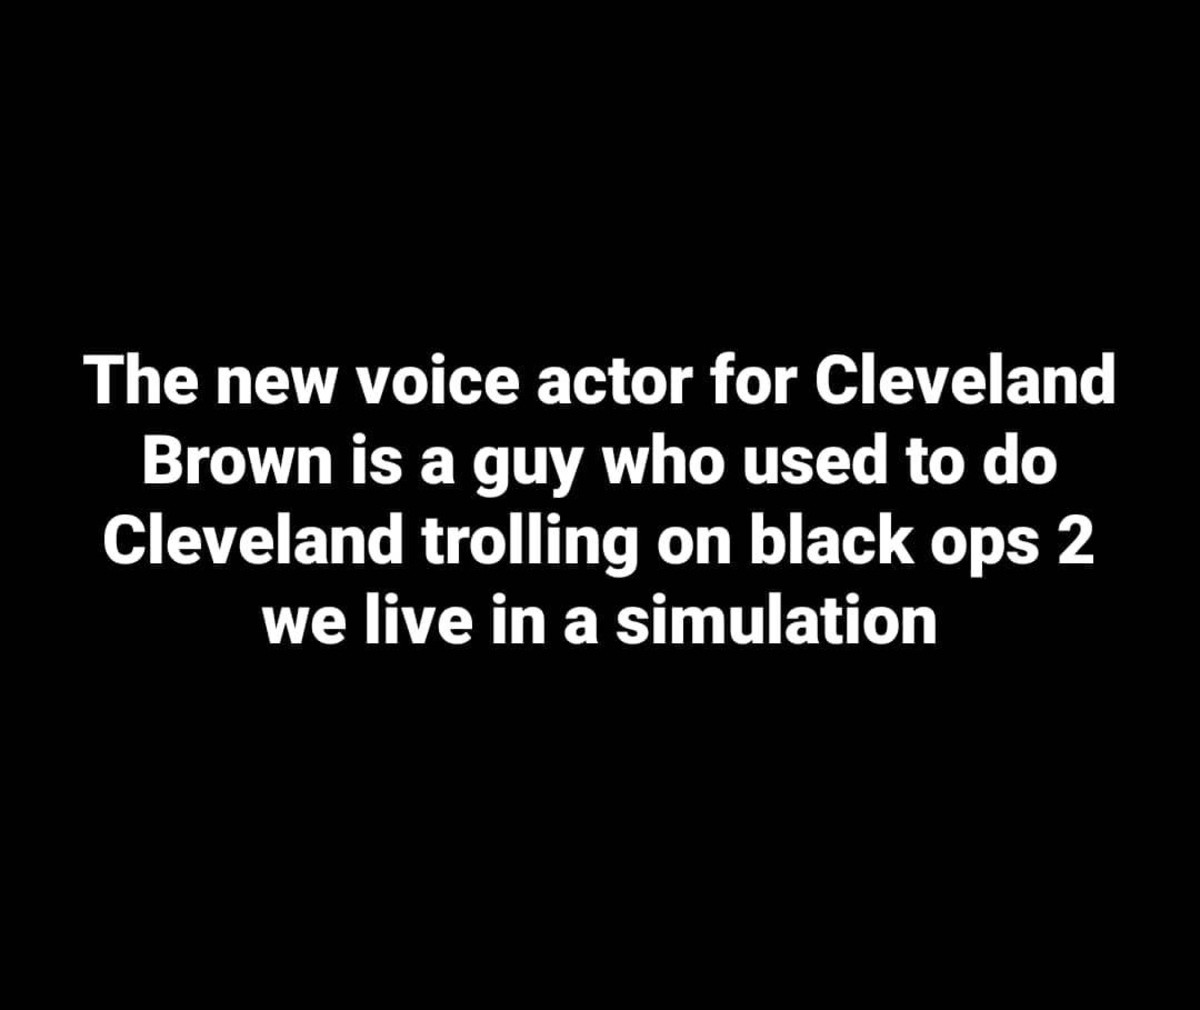 Cleveland Brown. .. I thought maybe the old voice actor died or something, but nooo.